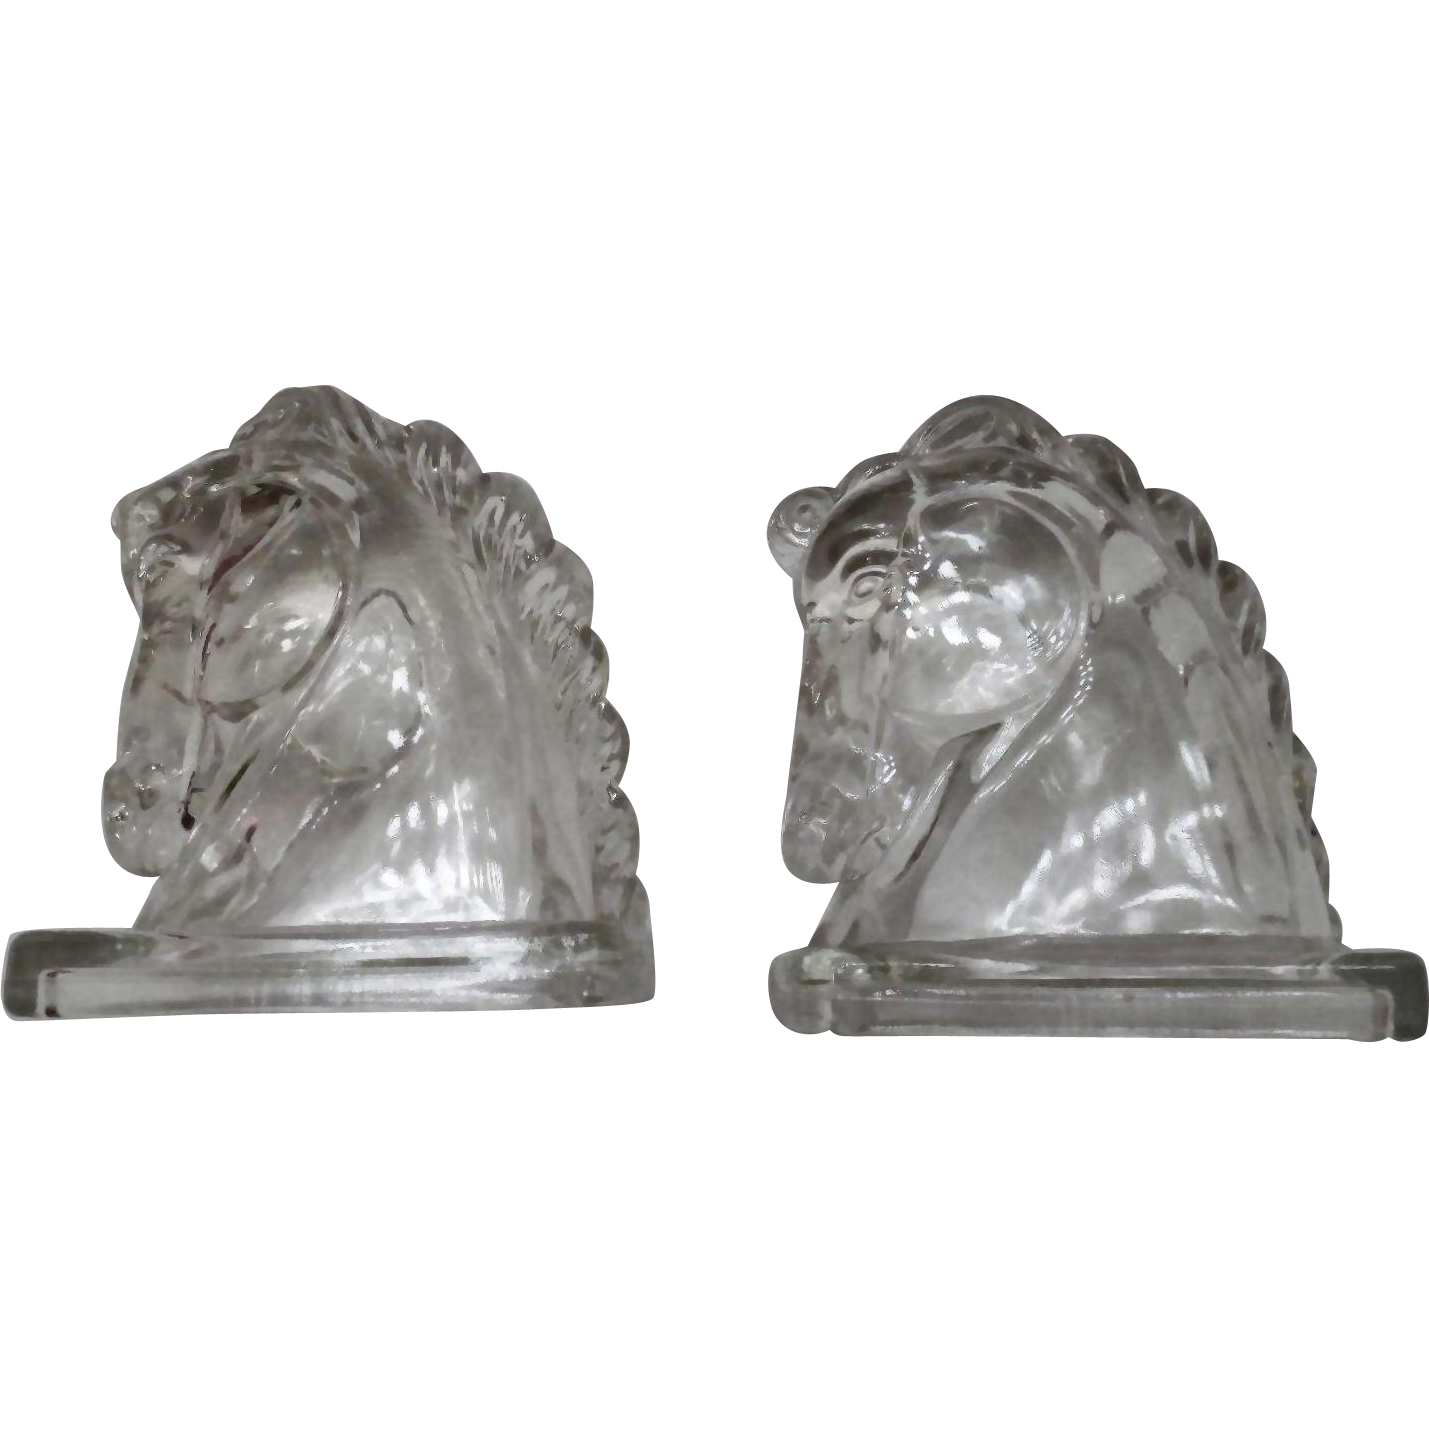 Pair of Vintage Glass Decorative Horse Head Bookends – Mid Century Modern – Figural Federal Glass